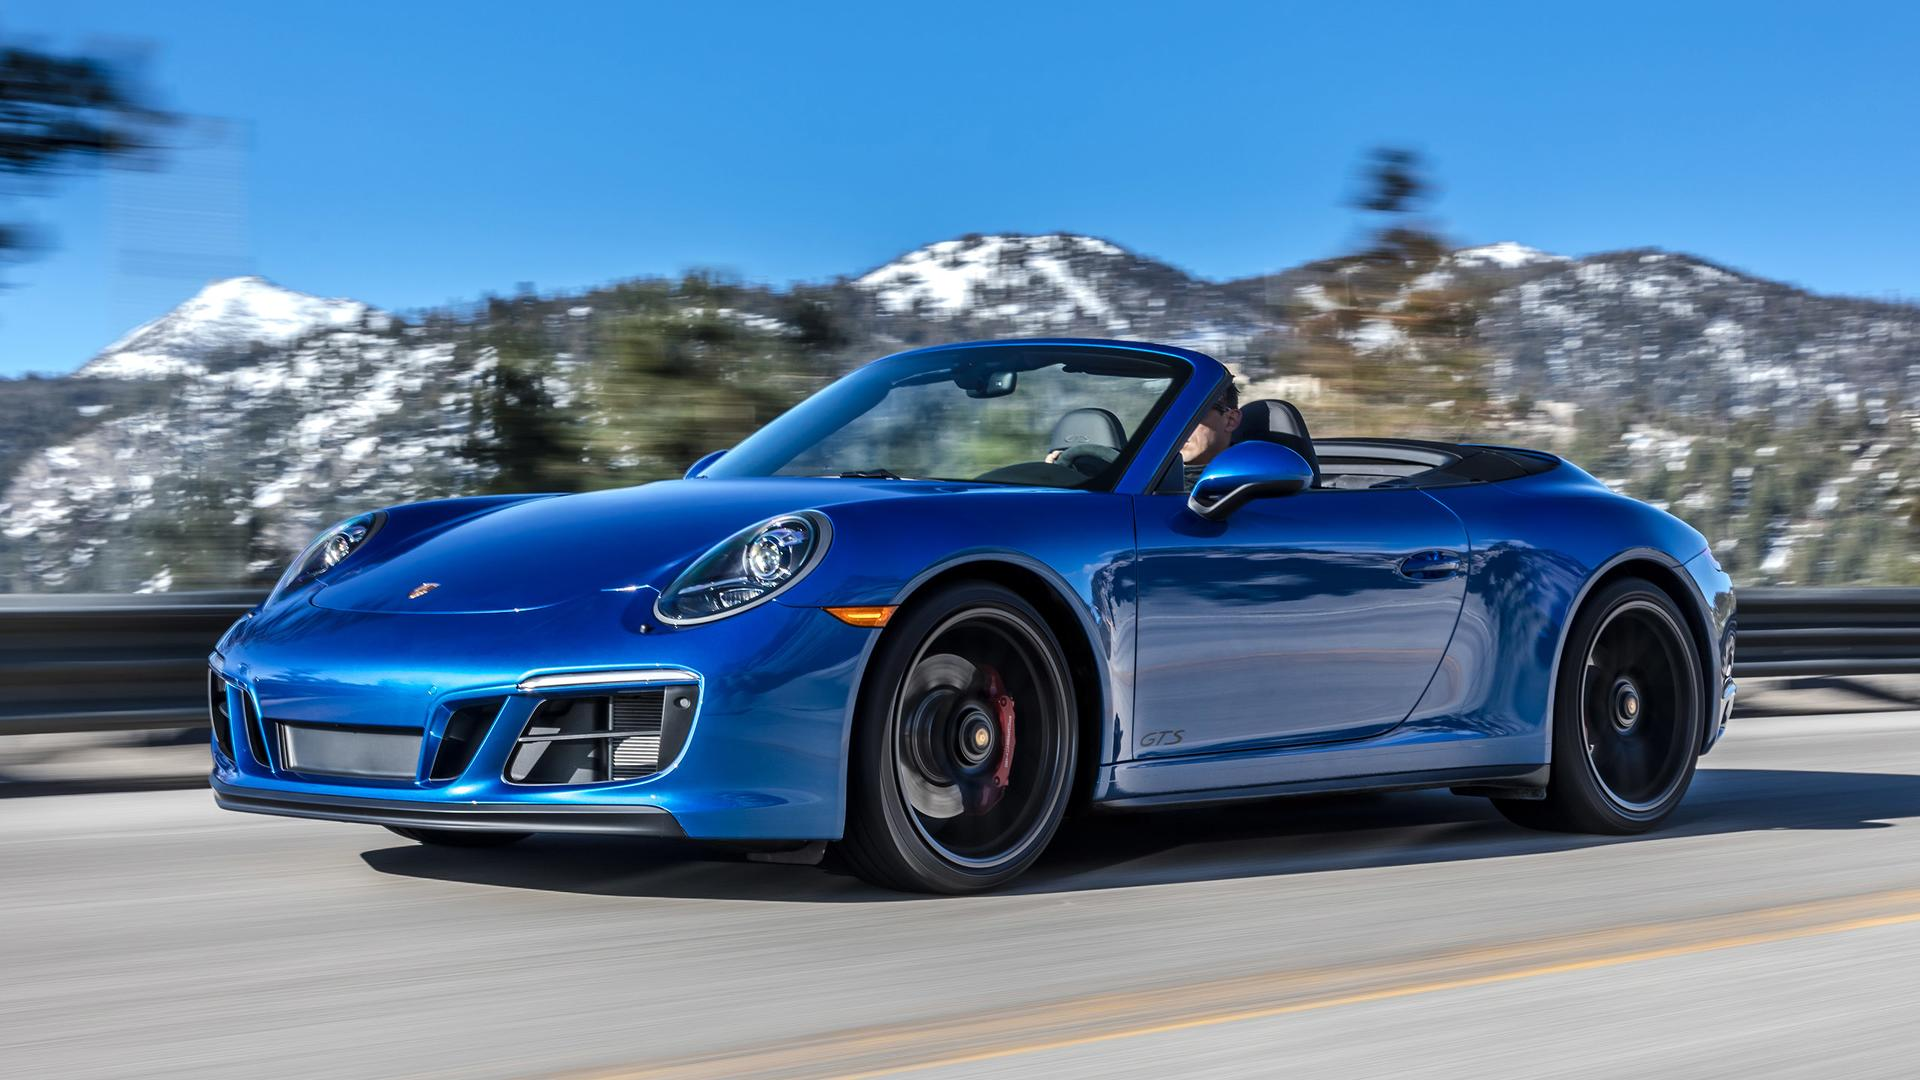 2018 Porsche 911 Carrera Gts First Drive Better In All The